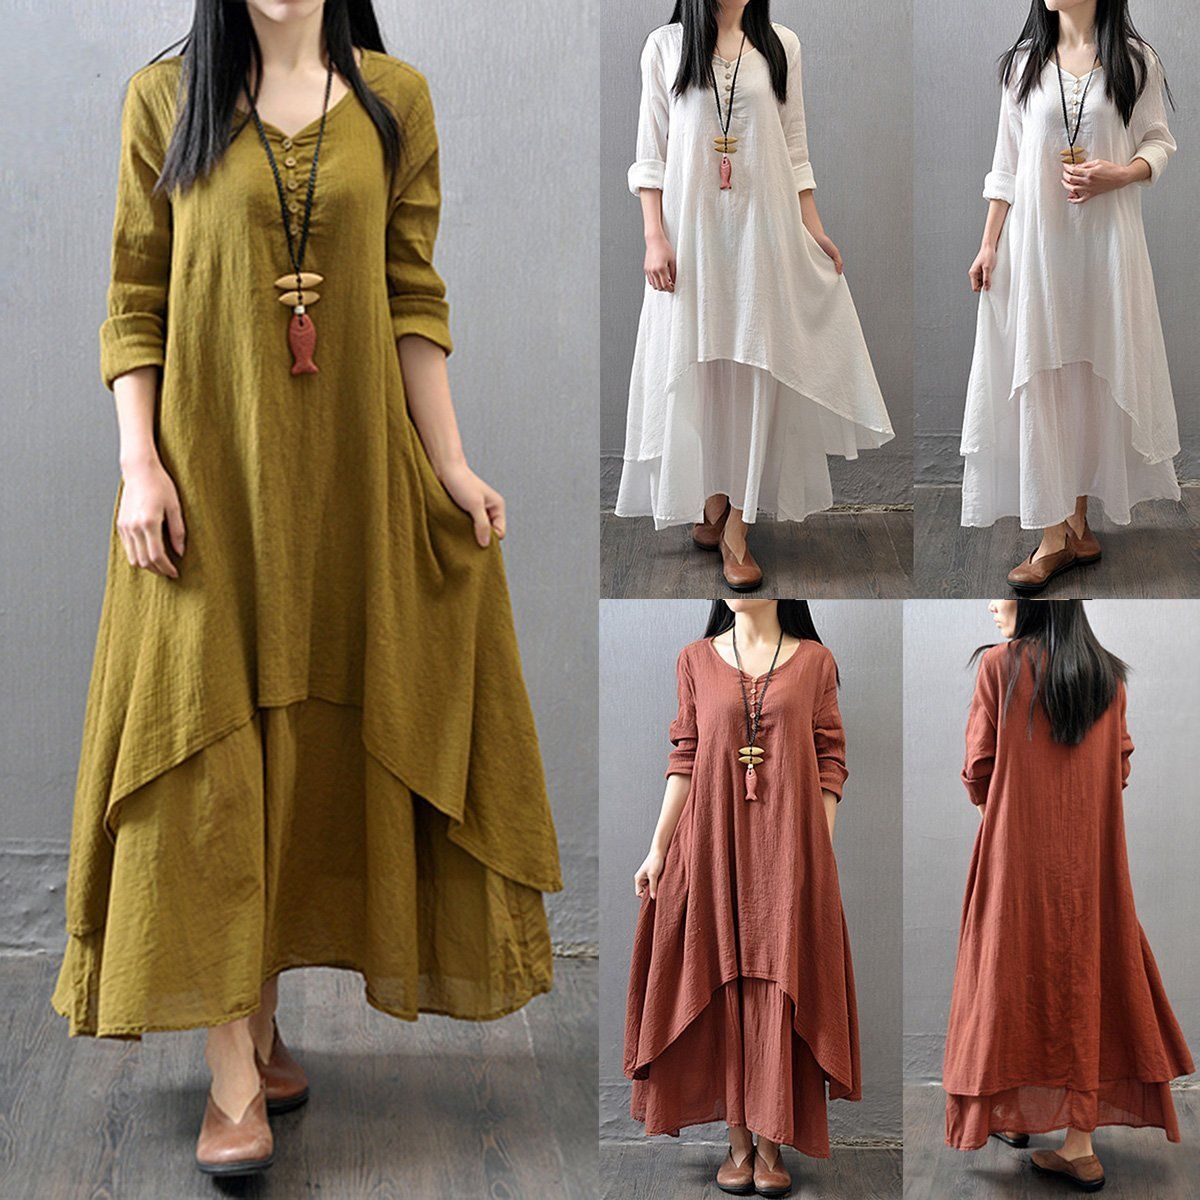 Women Short Sleeve Vintage Gypsy Ethnic Loose Evening Party Long Shirt Dress New